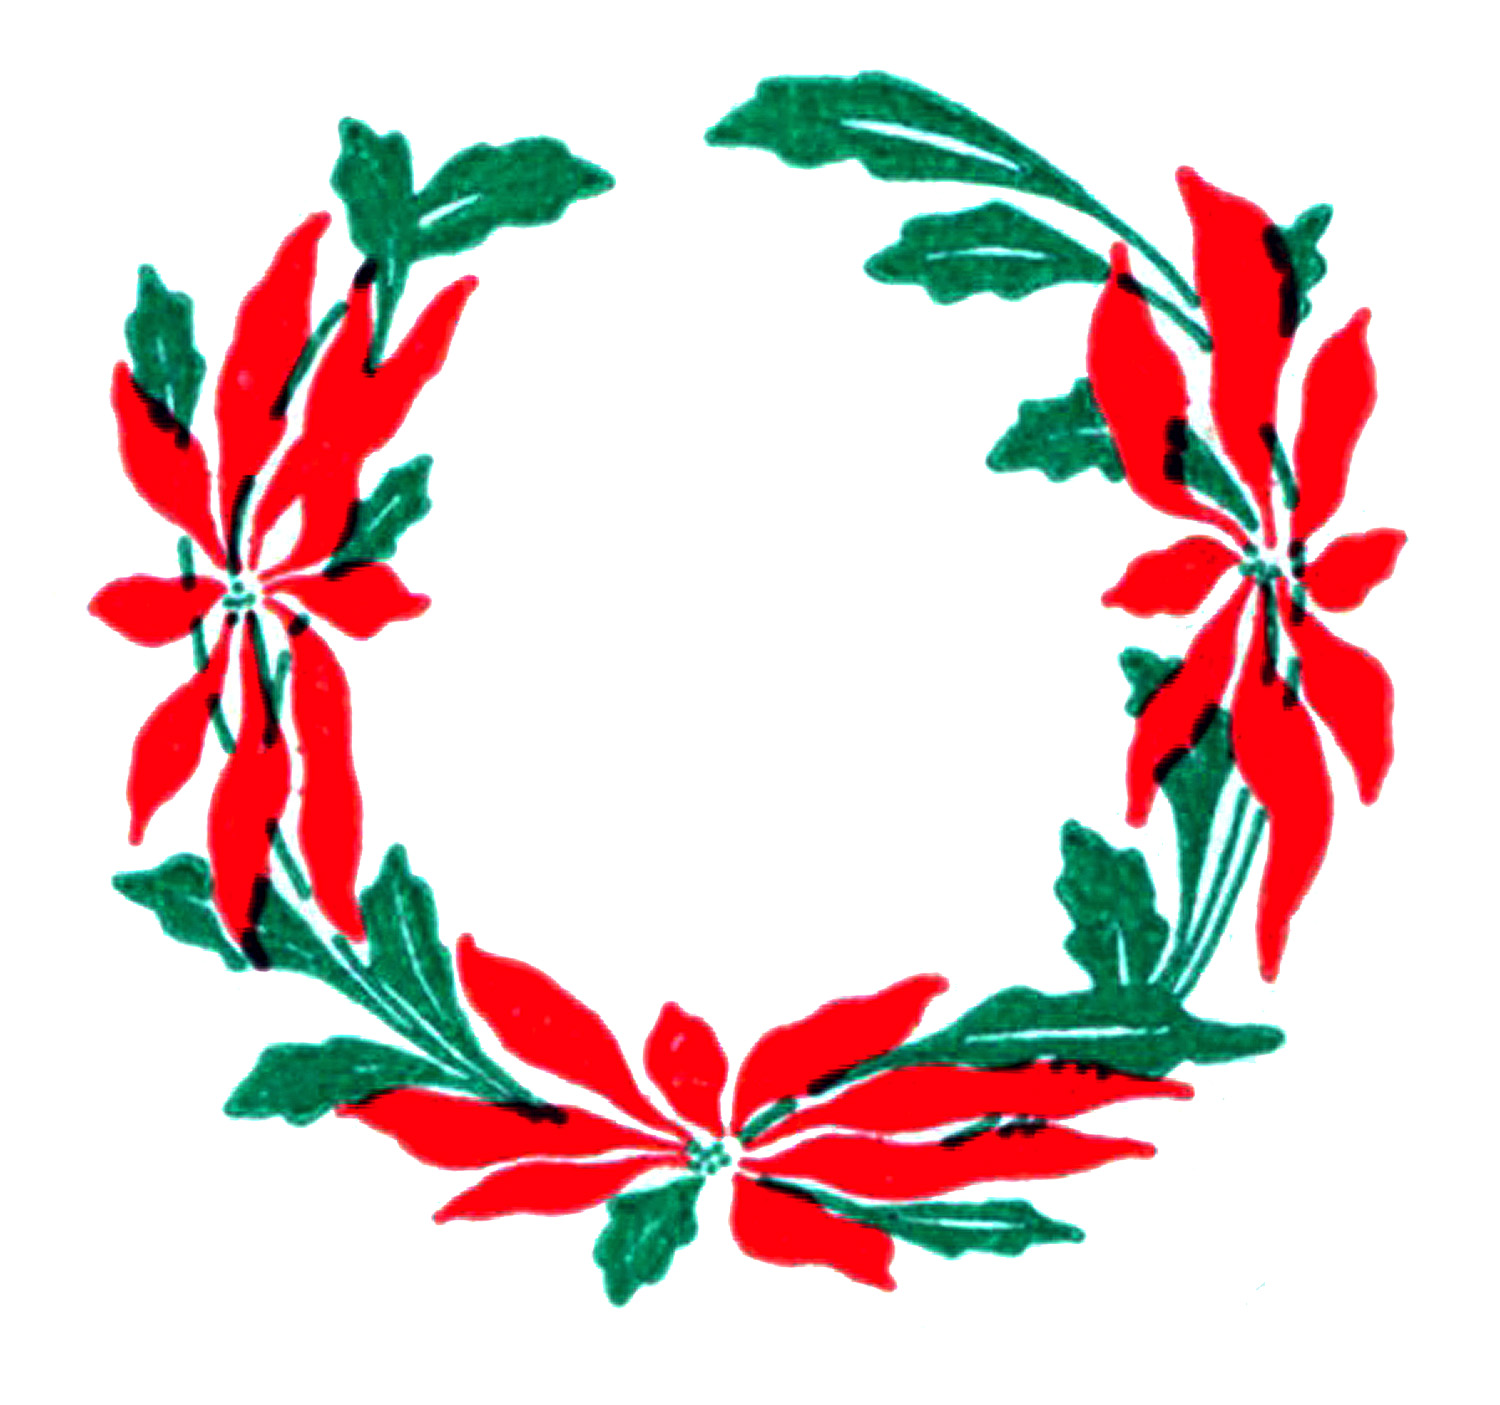 Christmas Wreath Silhouette Vector.Free Vector File And Clip Art Image Vintage Floral Wreath Oh